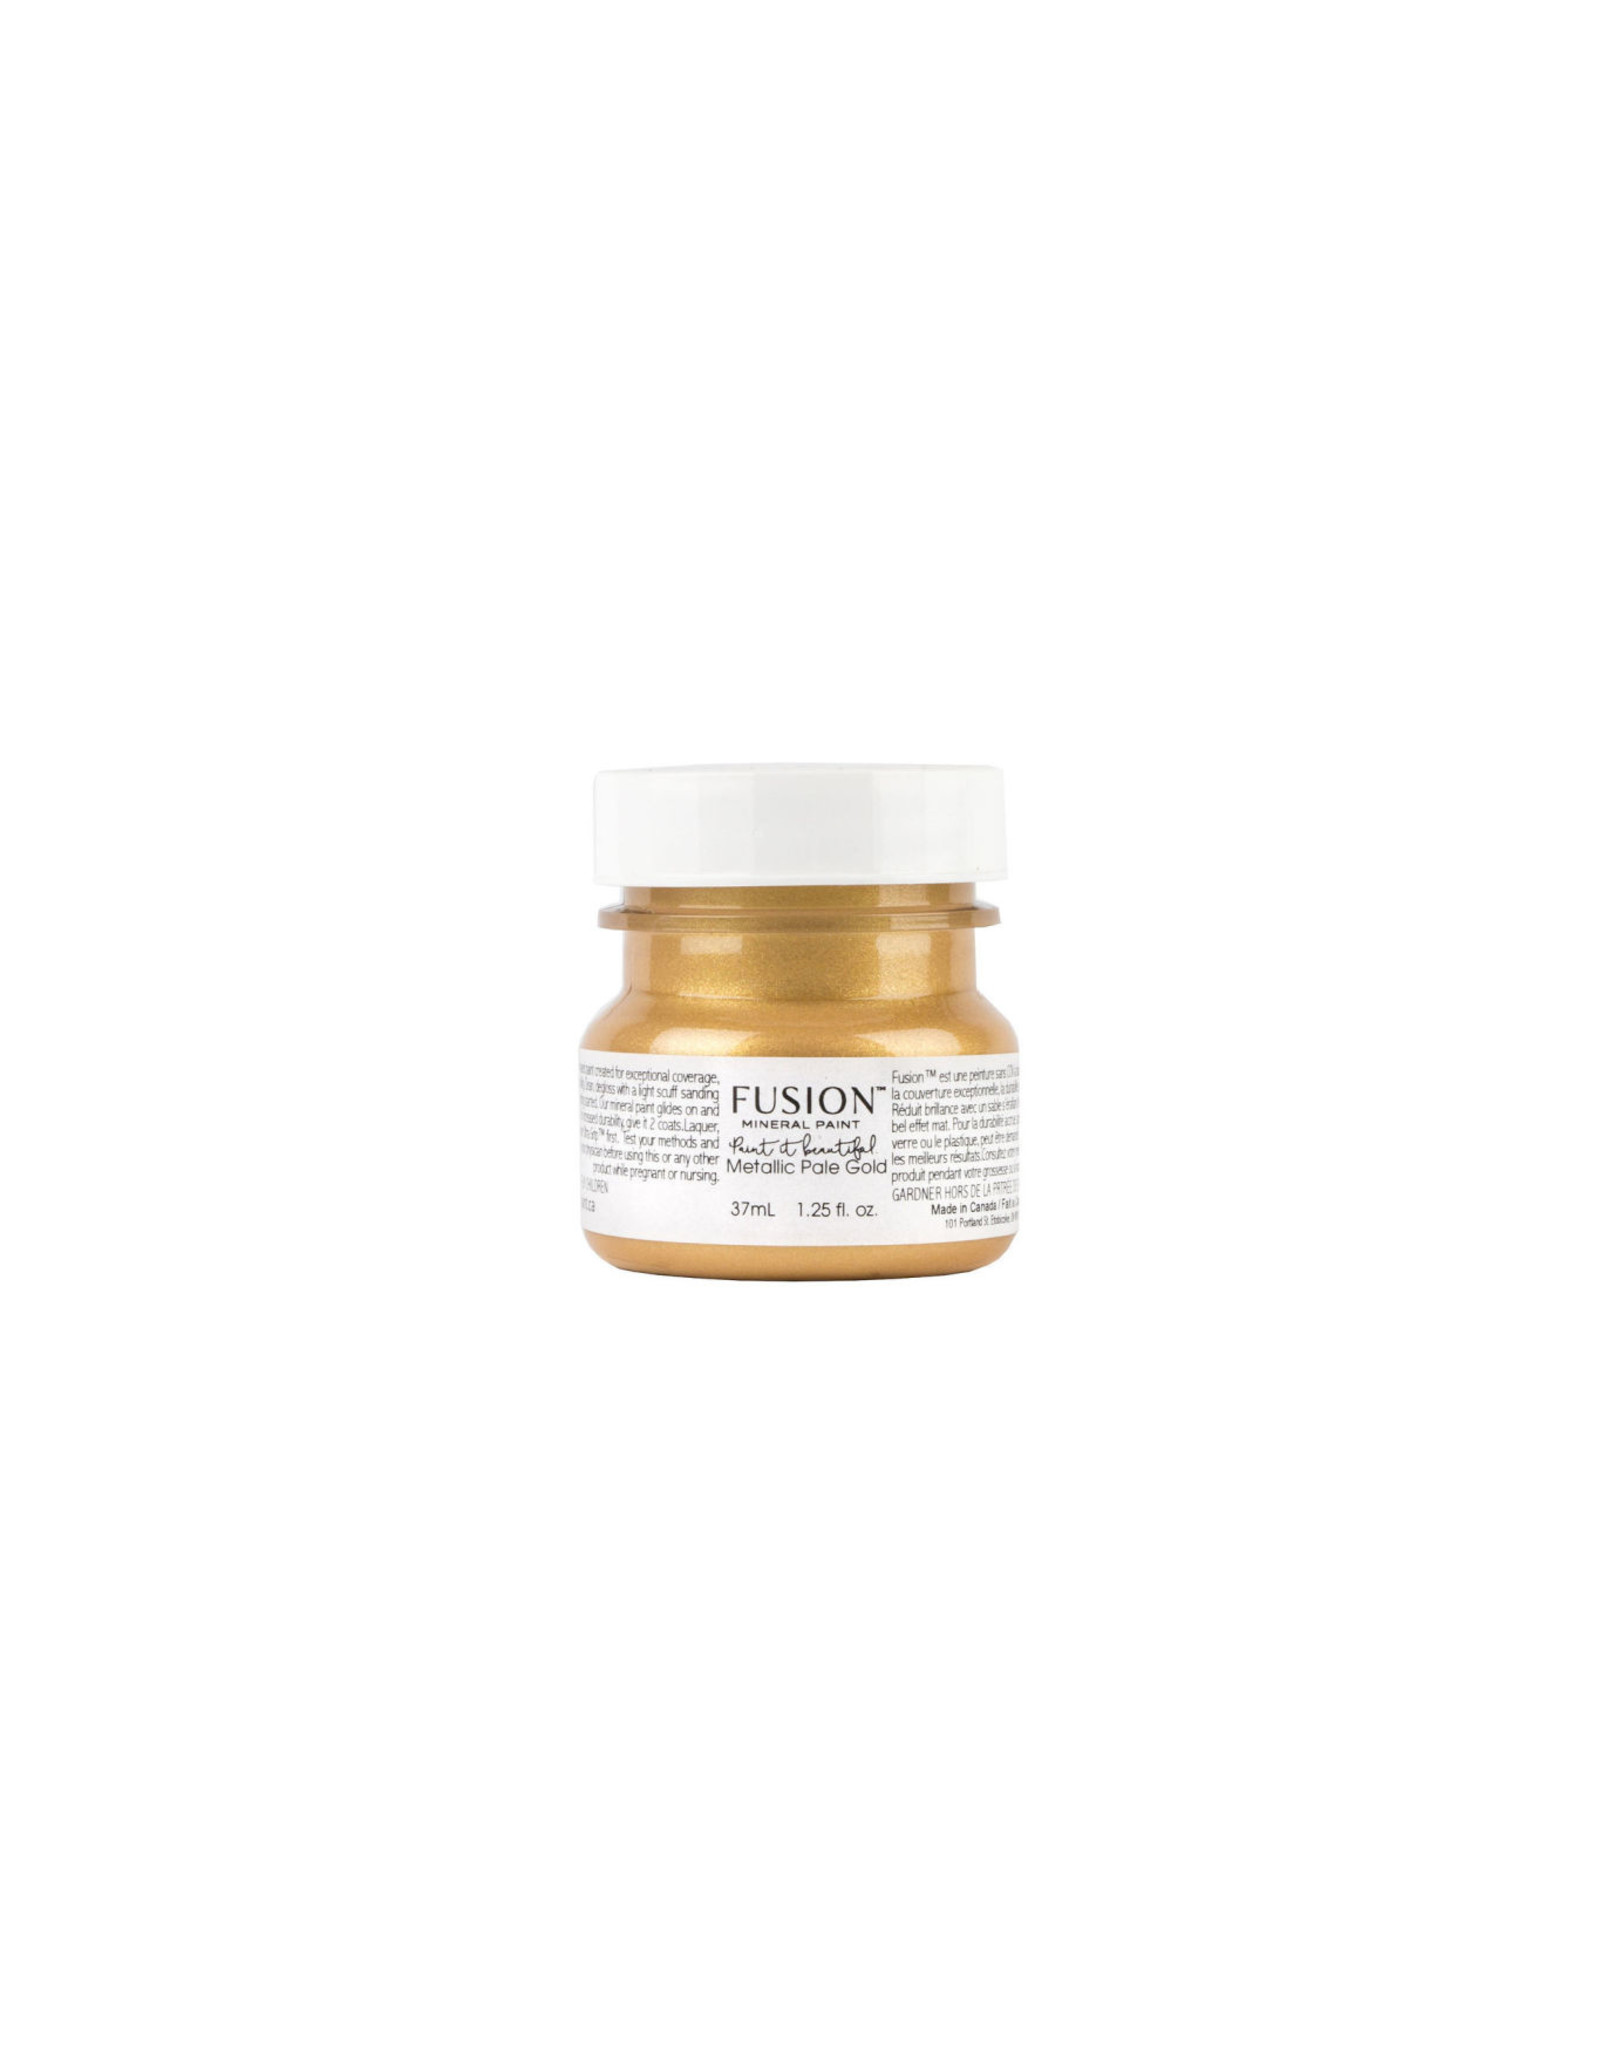 Fusion Mineral Paint Metallic 37ml Pale Gold